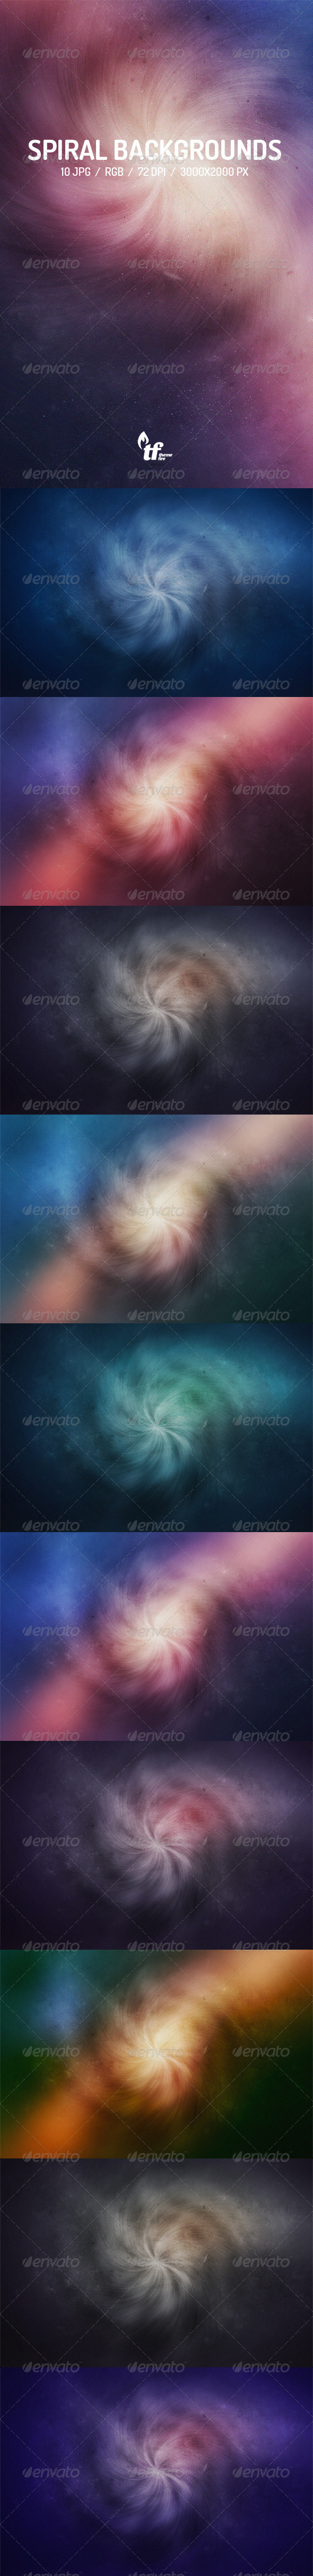 Spiral Backgrounds - Abstract Backgrounds